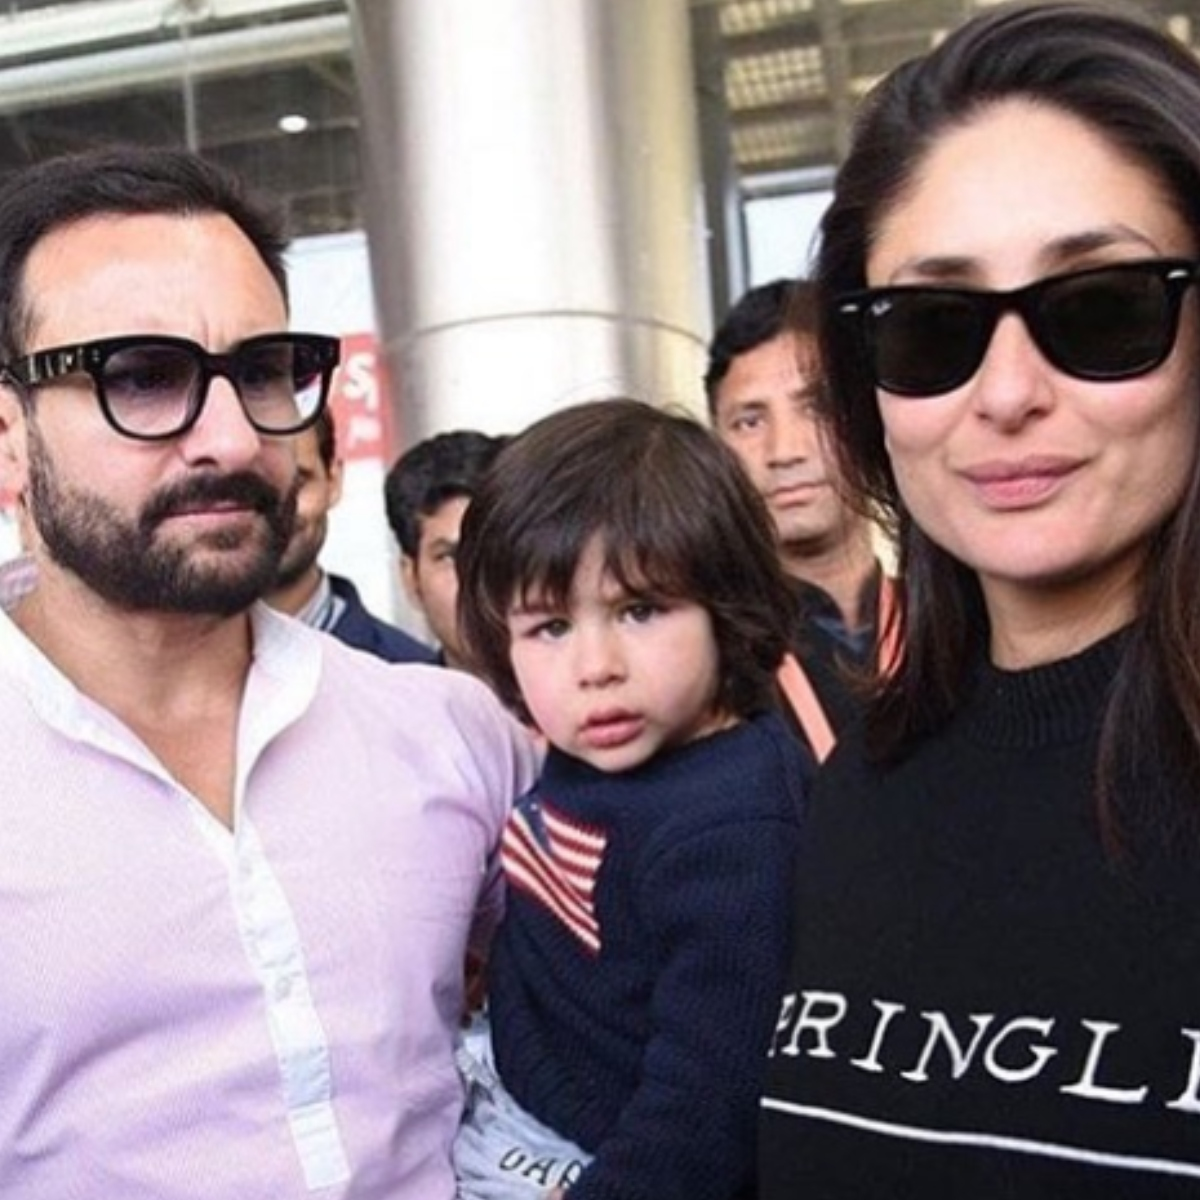 Kareena Kapoor Khan & Saif Ali Khan are all smiles while Taimur Ali Khan's expression is adorable in this PIC